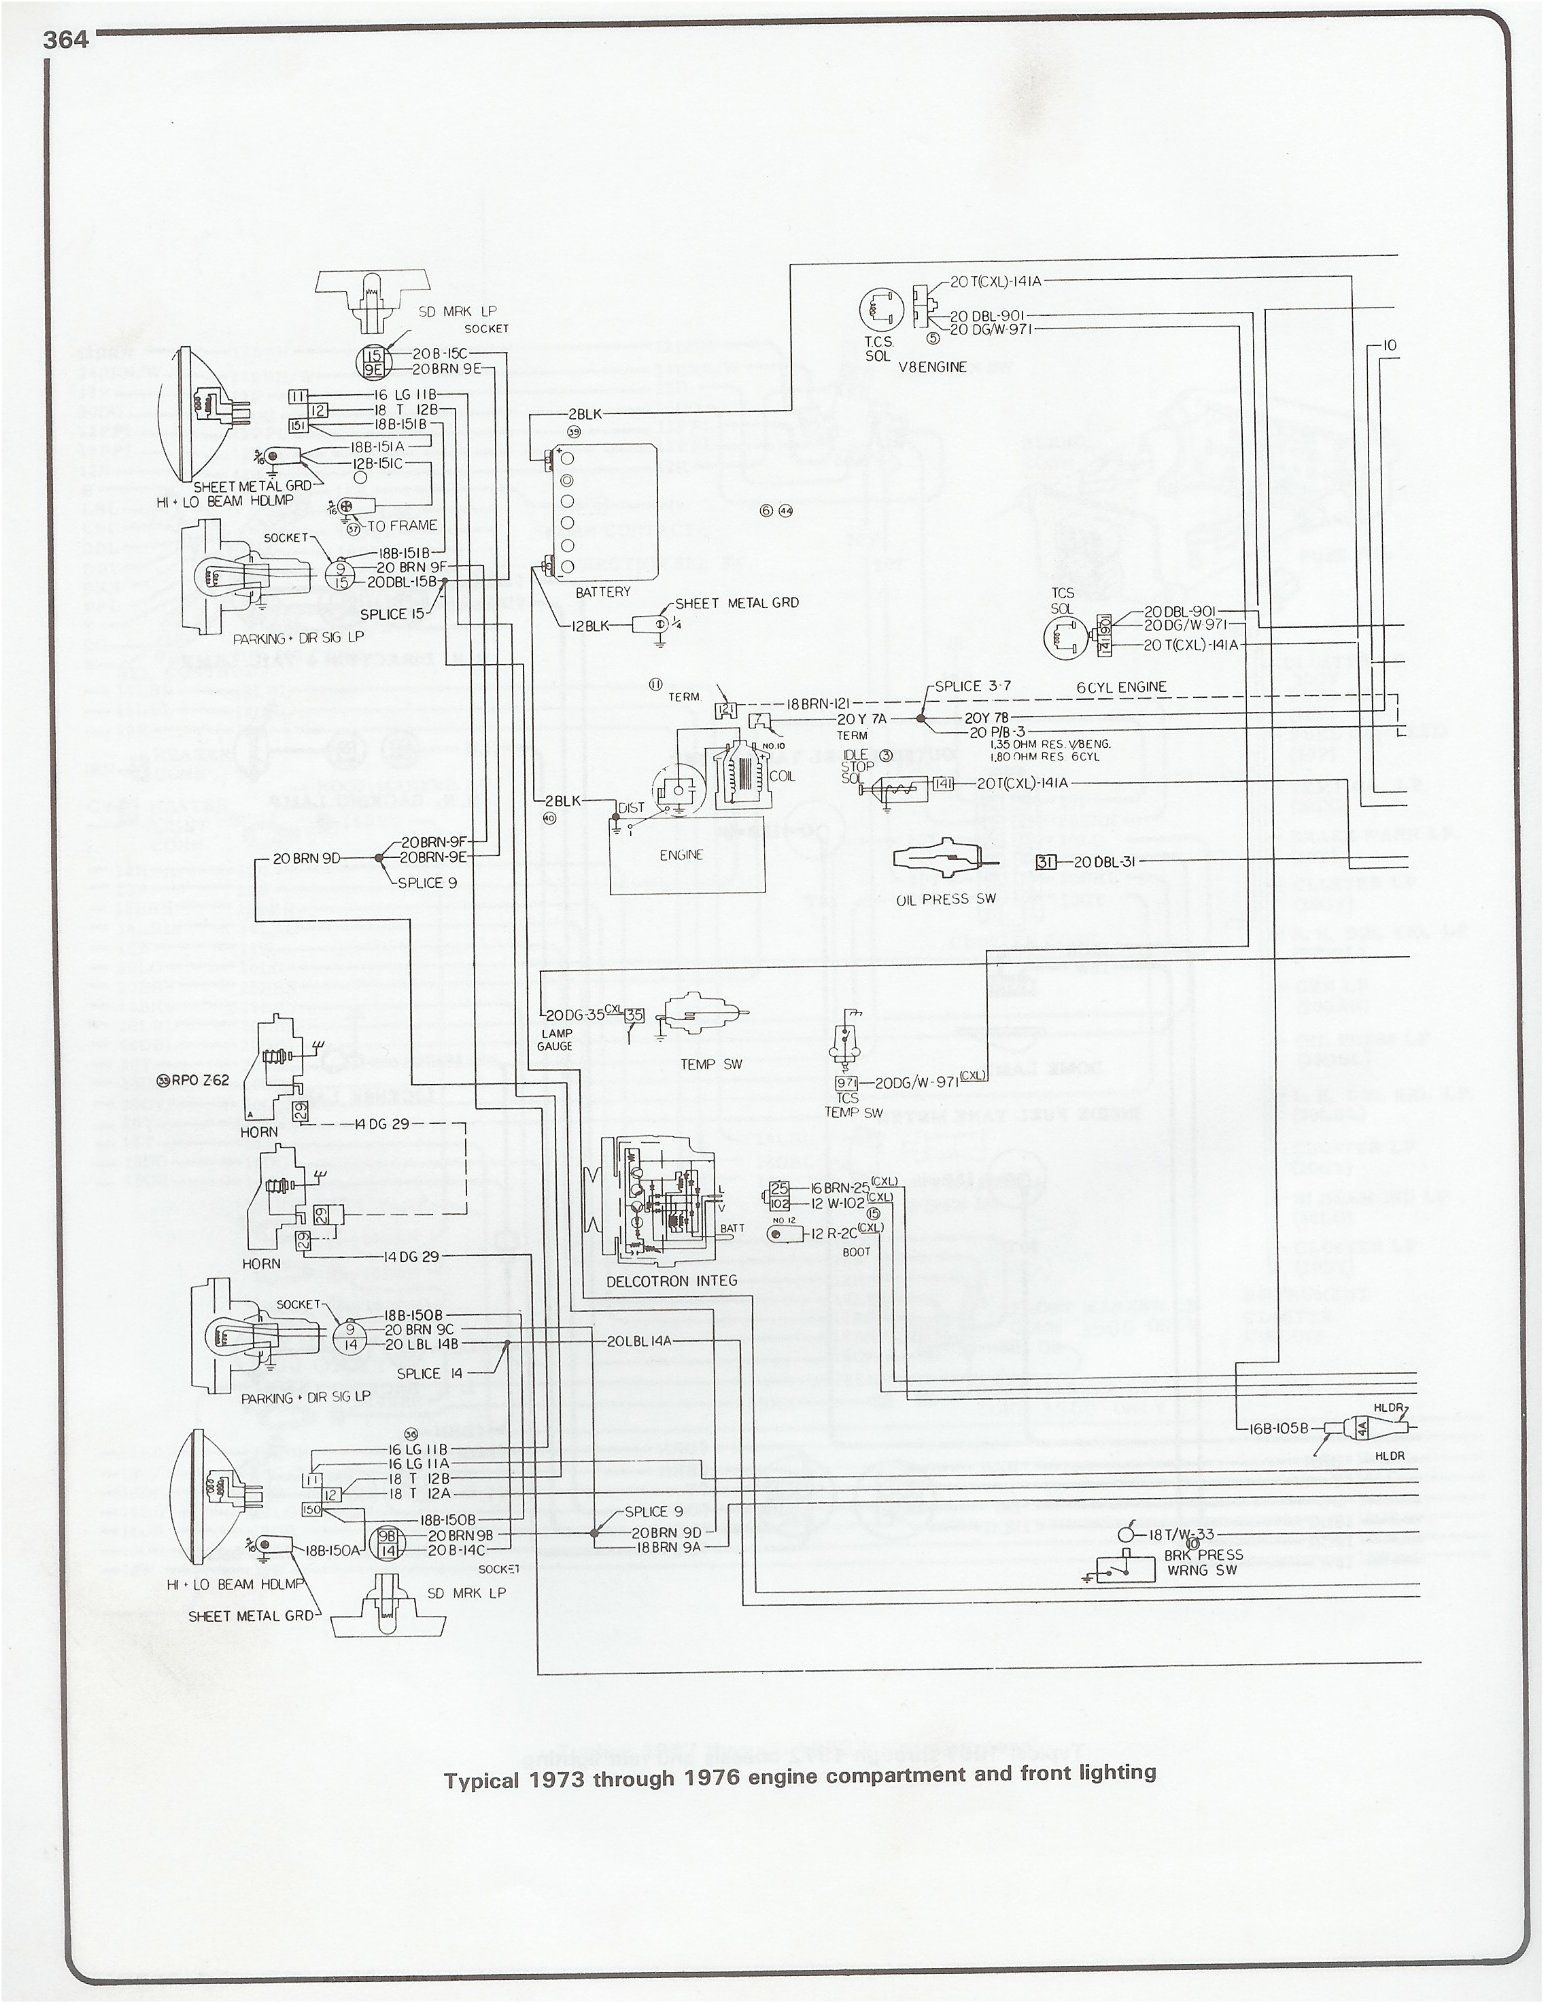 wiring diagram 1973 1976 chevy pickup chevy wiring diagram 76 gmc tail light wiring [ 1544 x 2003 Pixel ]